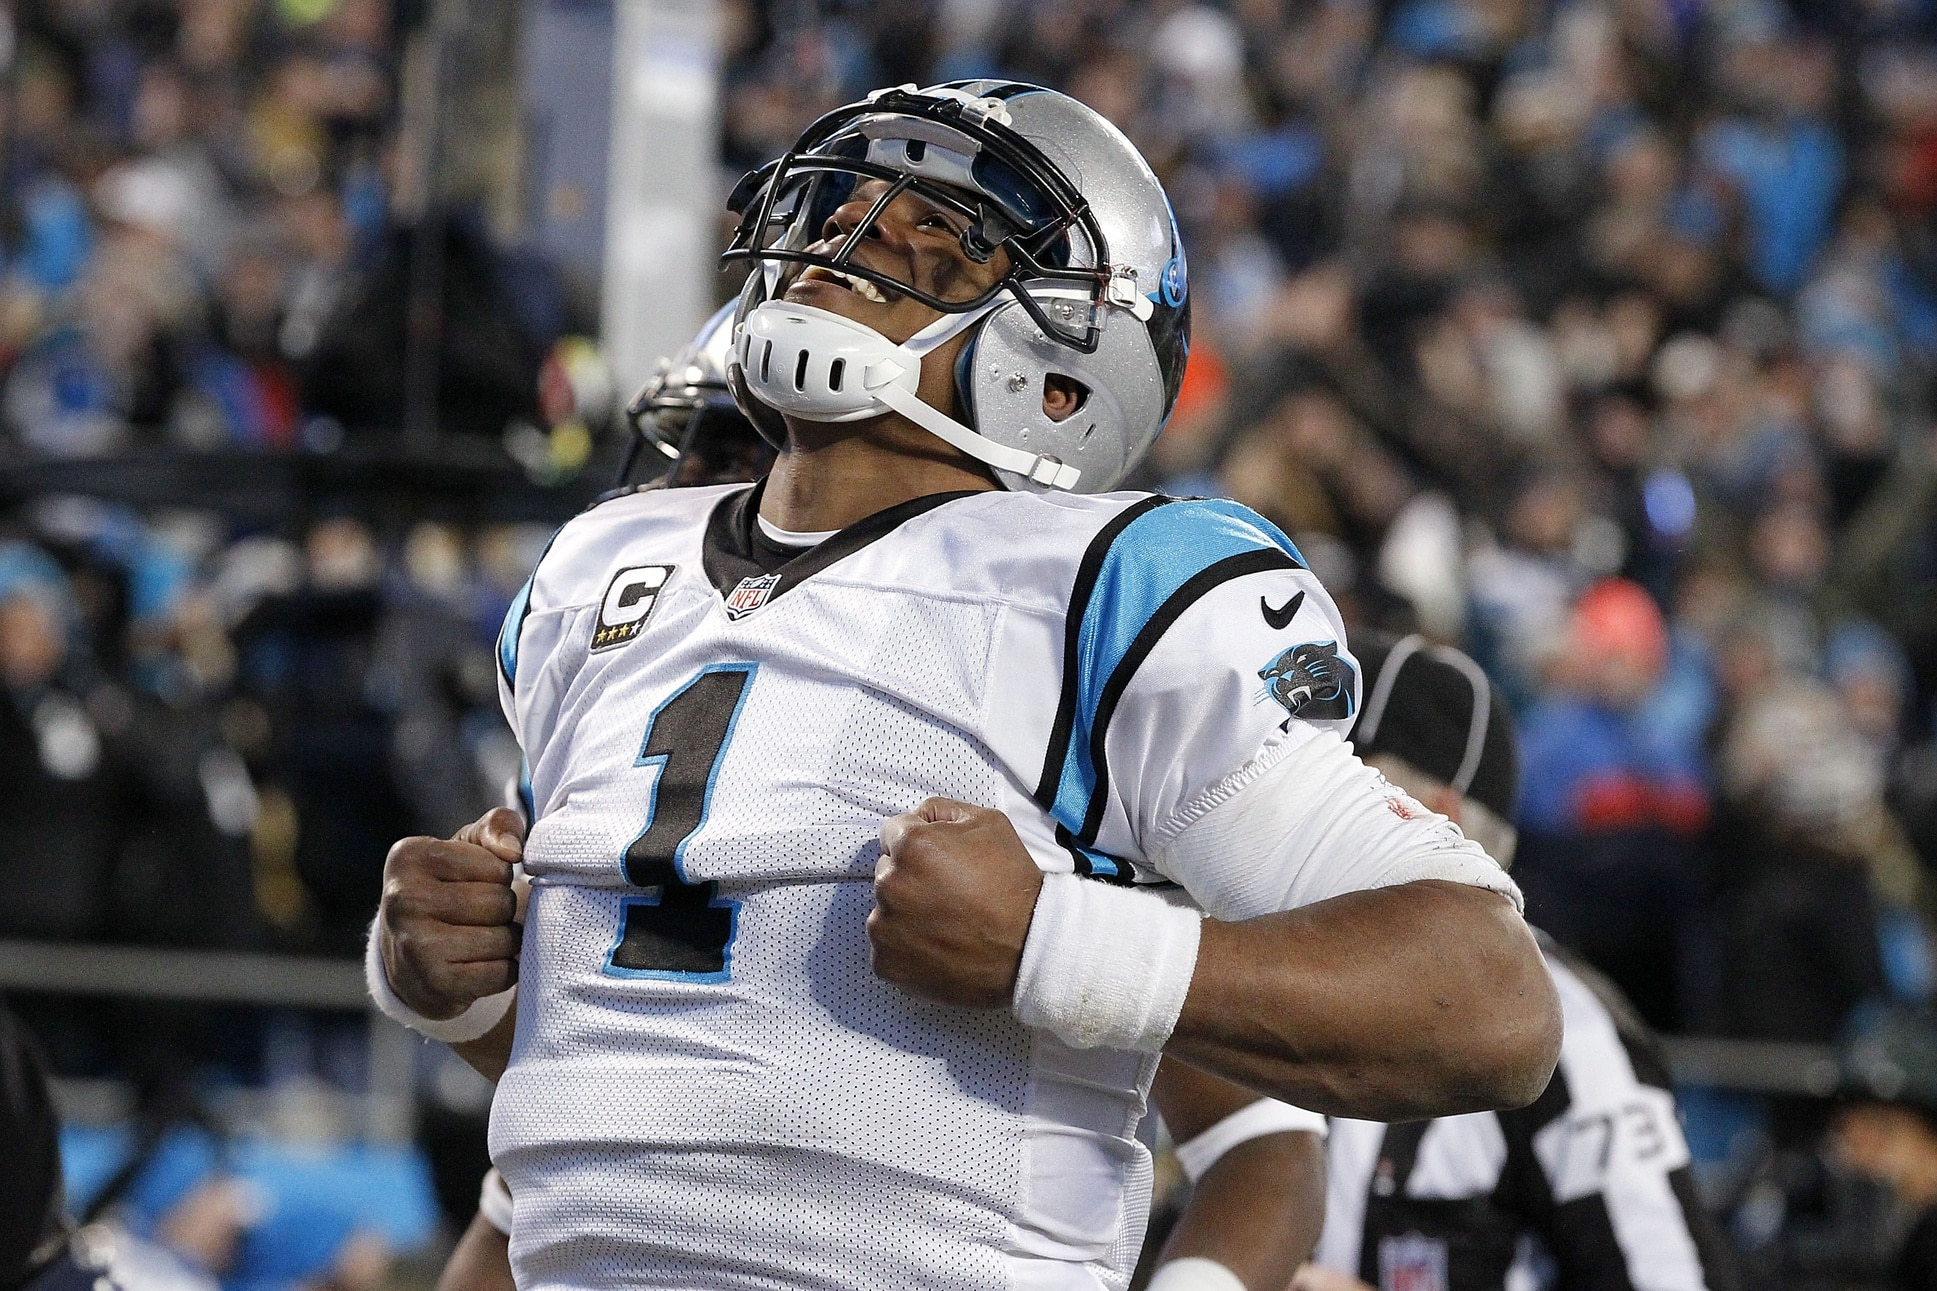 dual threat NFL quarterbacks, Cam Newton